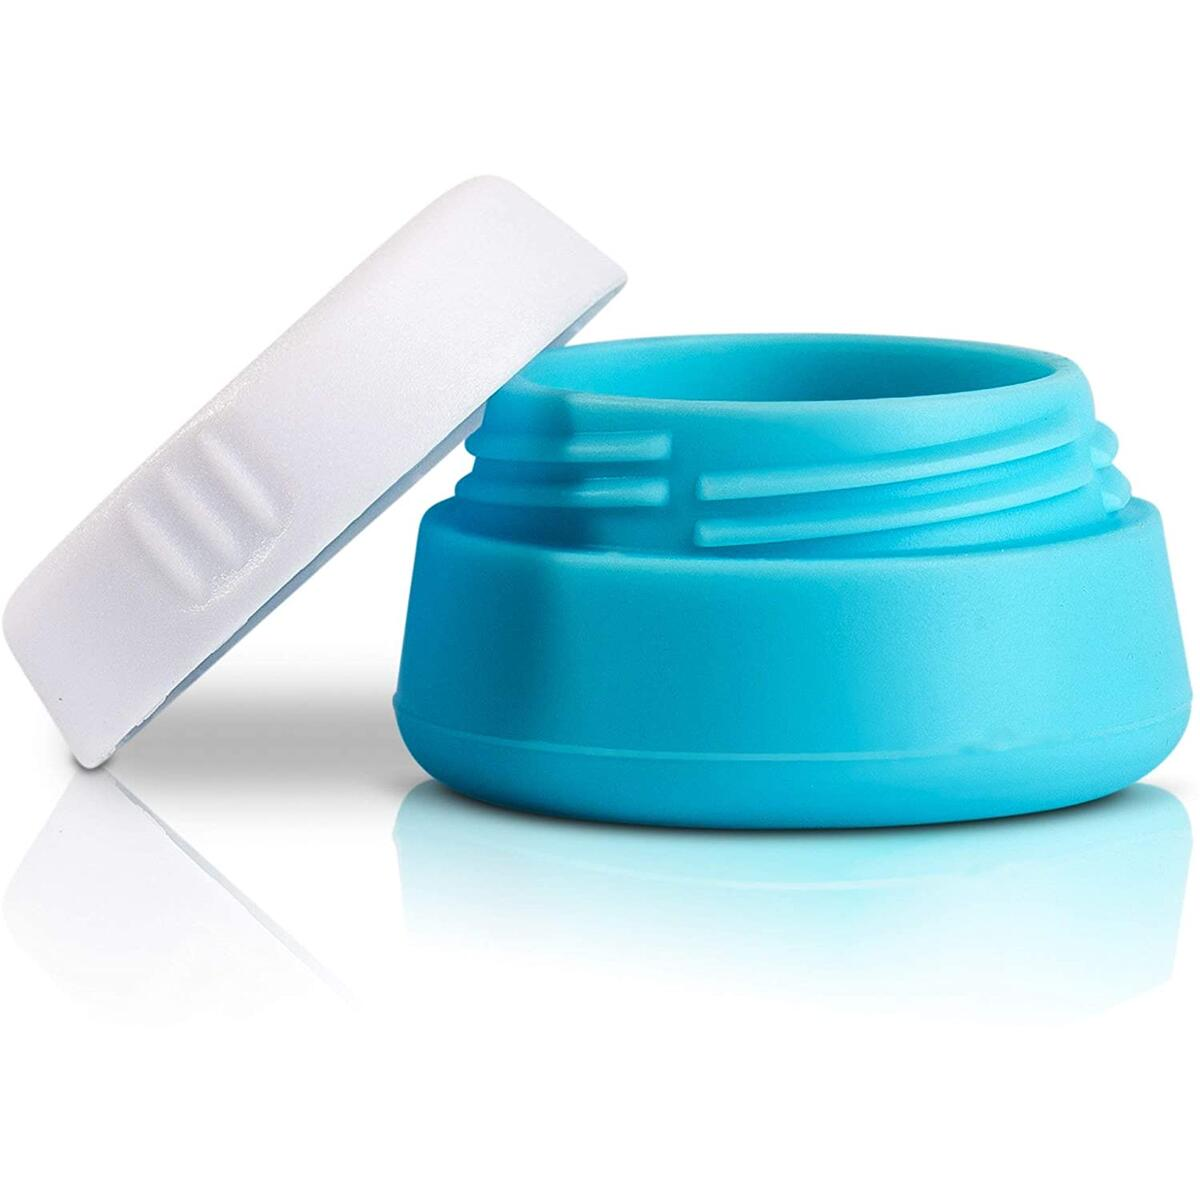 Travel Jars Cosmetic Containers, Perfect Compact Sample Size Silicone Travel Container for Makeup, Lotion, Cream Etc, Superior Quality Empty Jar